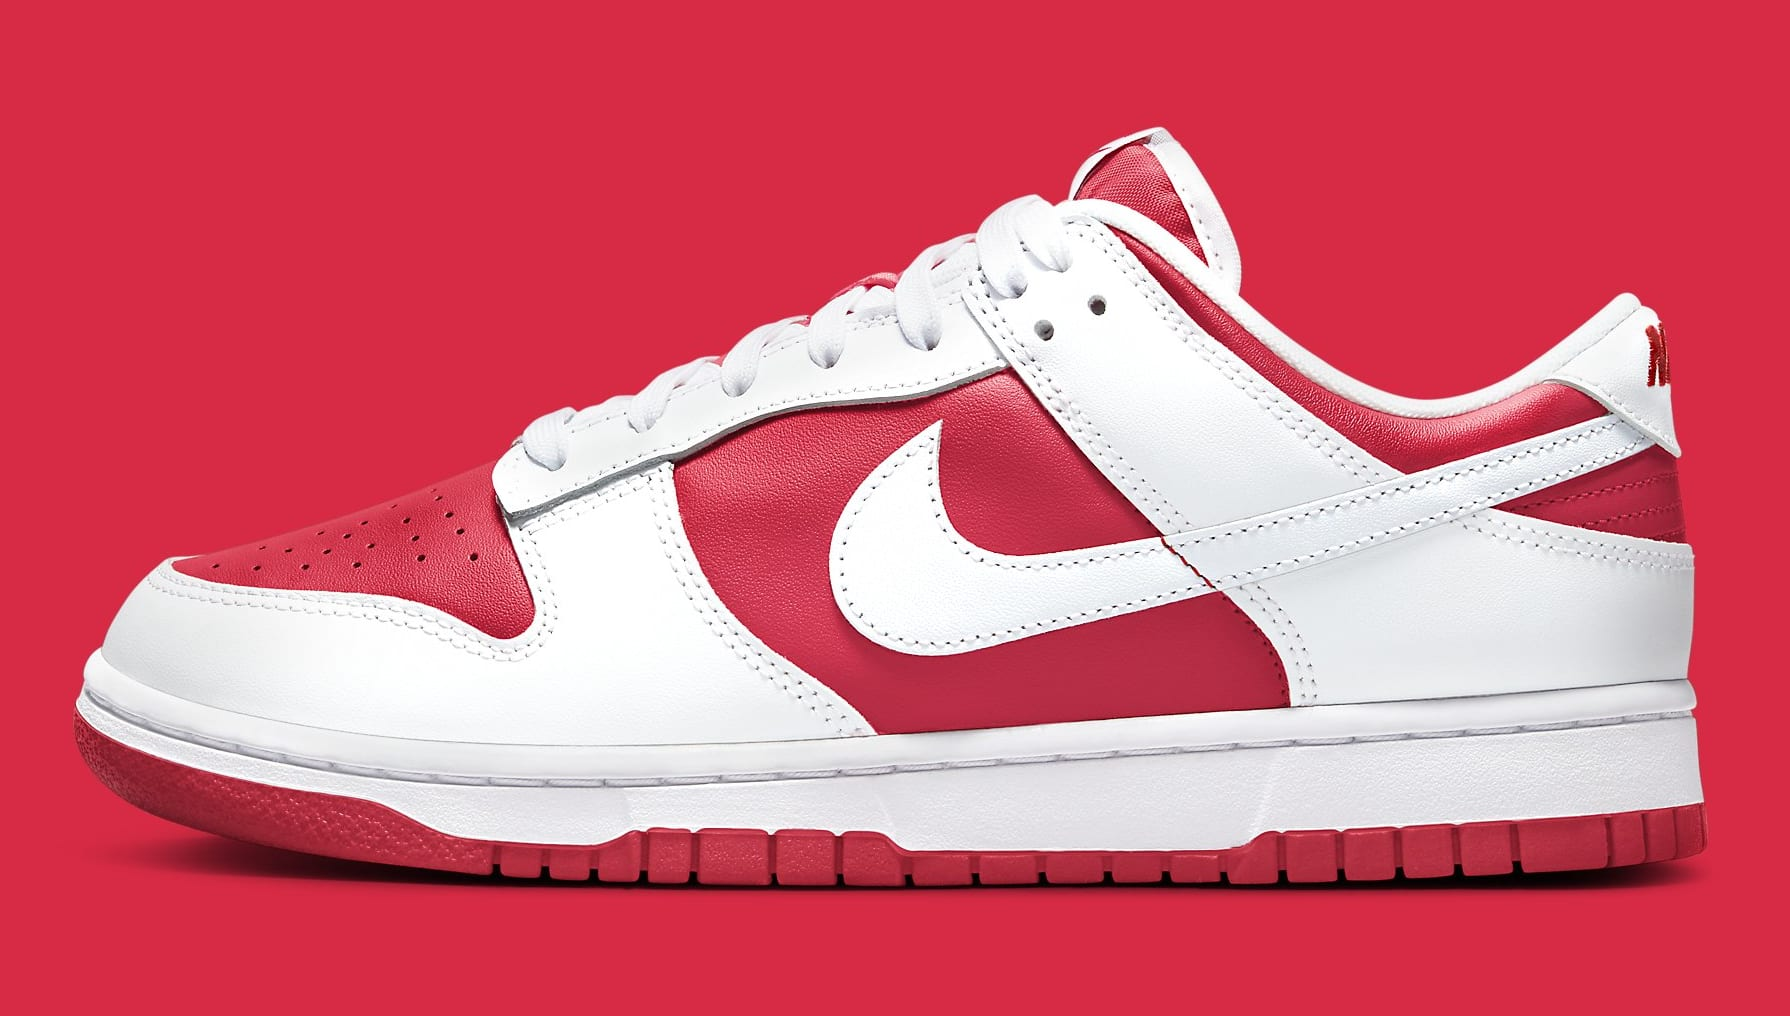 Nike Dunk Low Championship Red DD1391-600 Release Date Profile